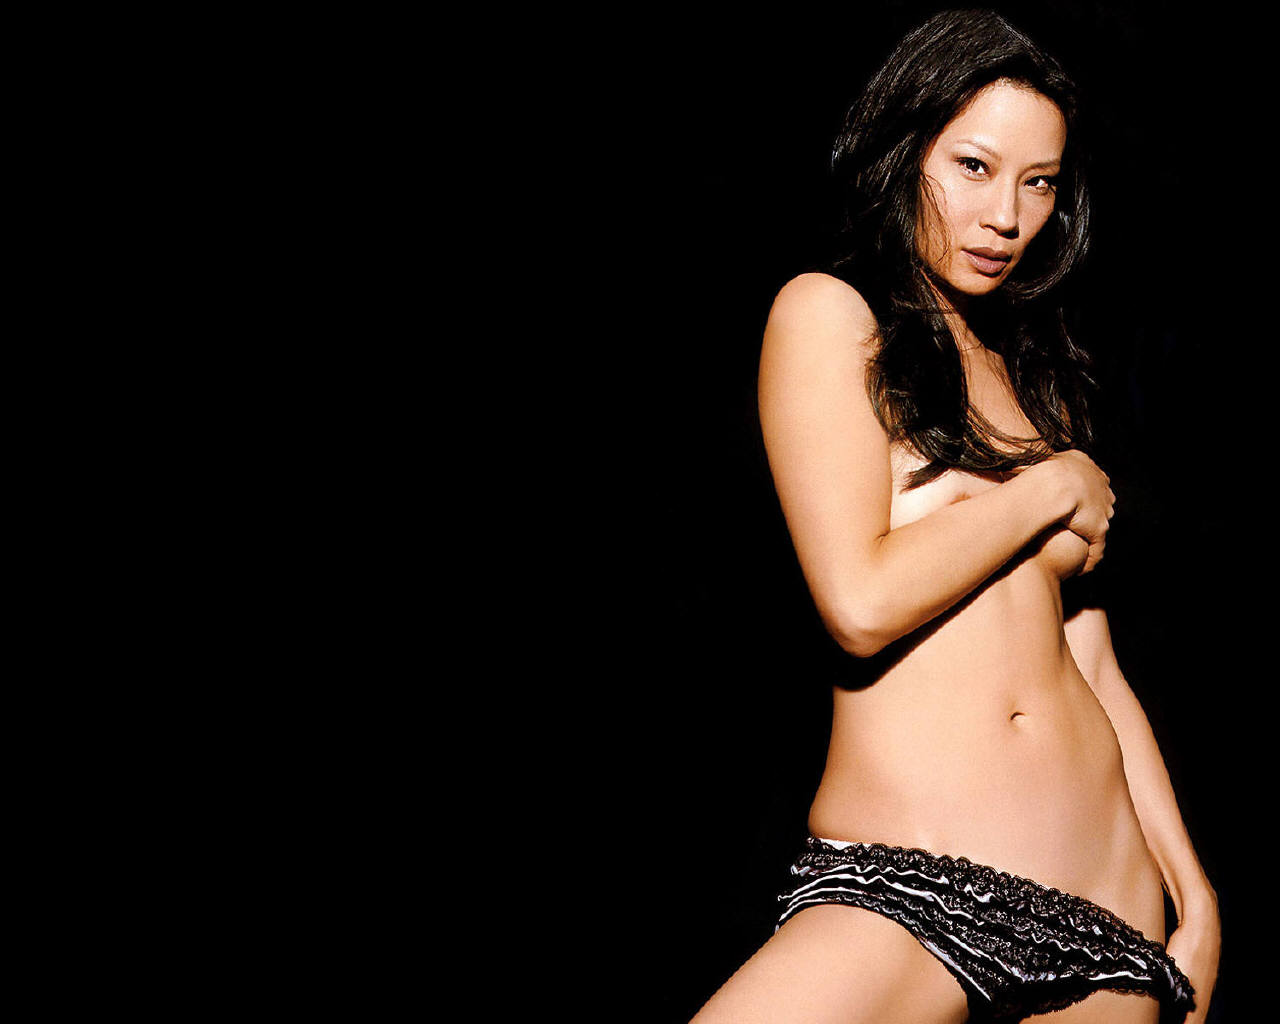 lucy liu free wallpaper - photo #4